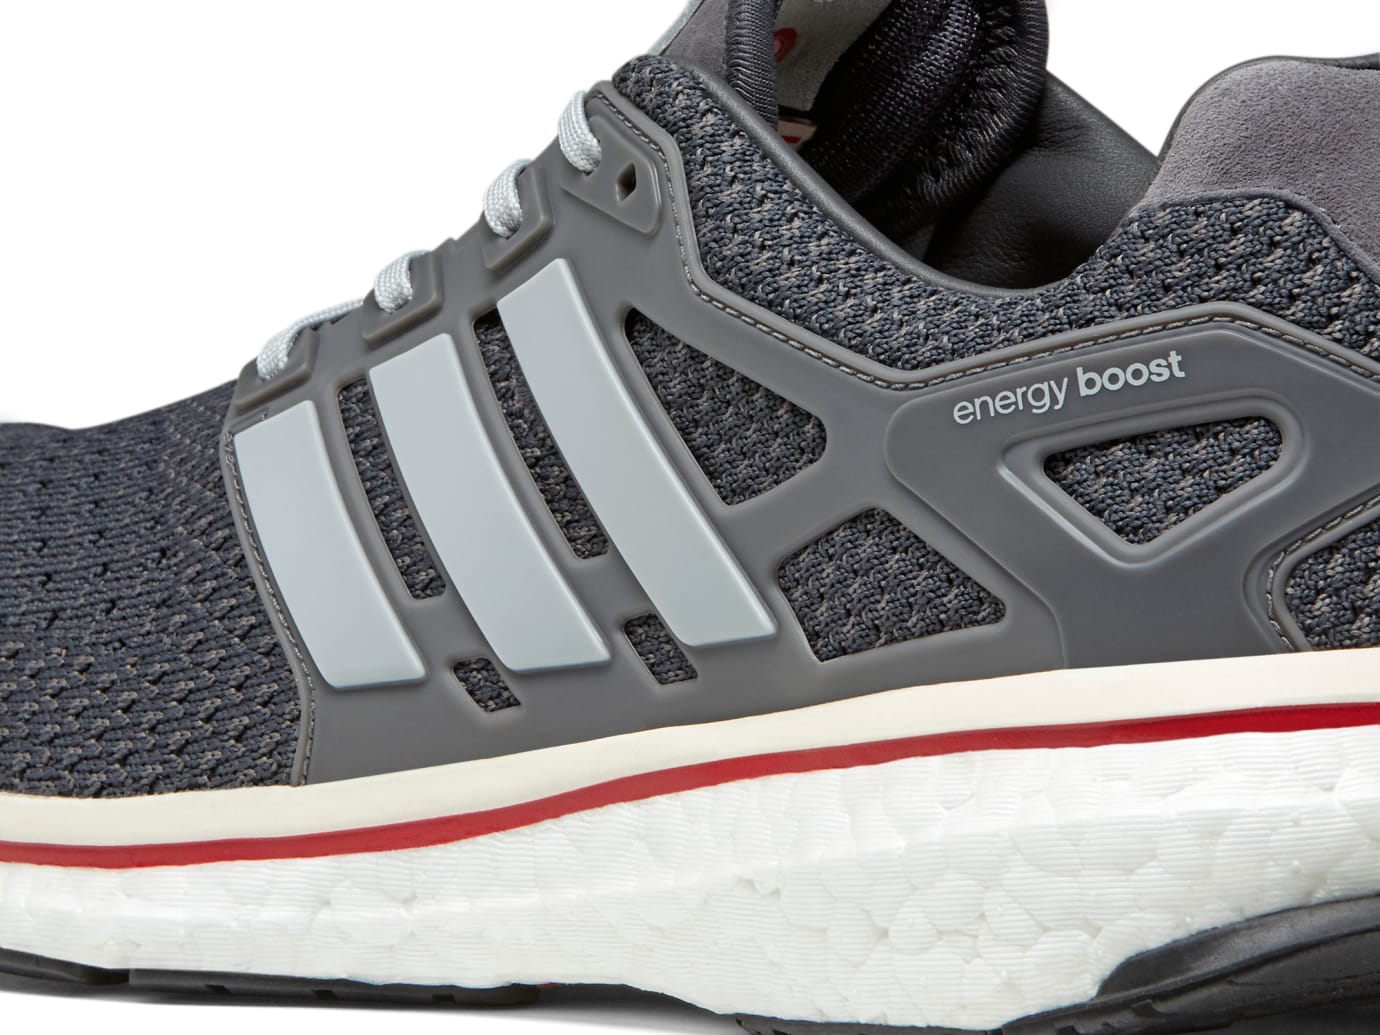 Adidas Energy Boost Run Thru Time 5